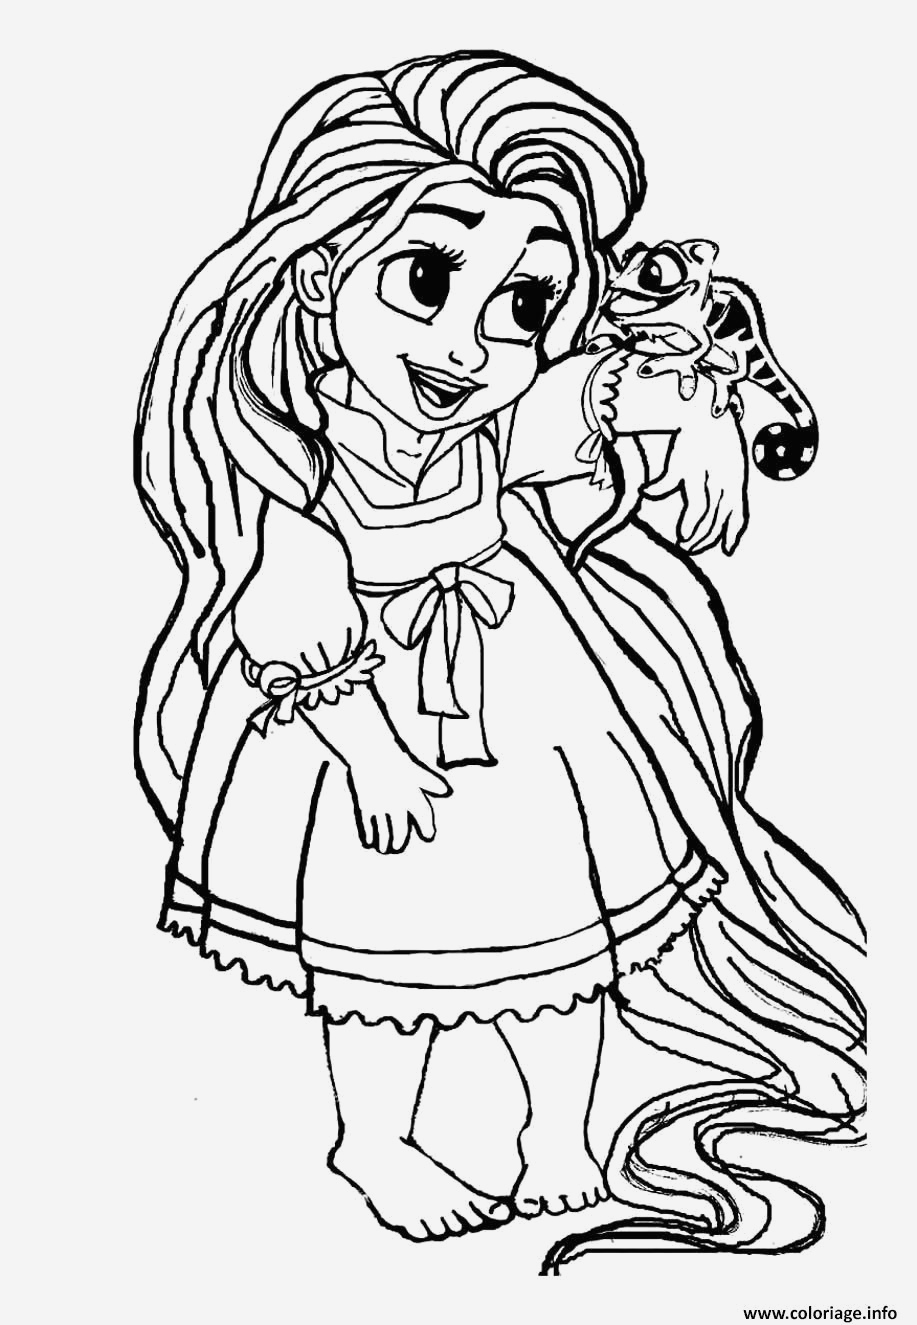 Coloriage De Princesses Disney A Imprimer Inspirational Dessin Kawaii Disney Other Wallpaper Of Coloriage De Princesses Disney A Imprimer